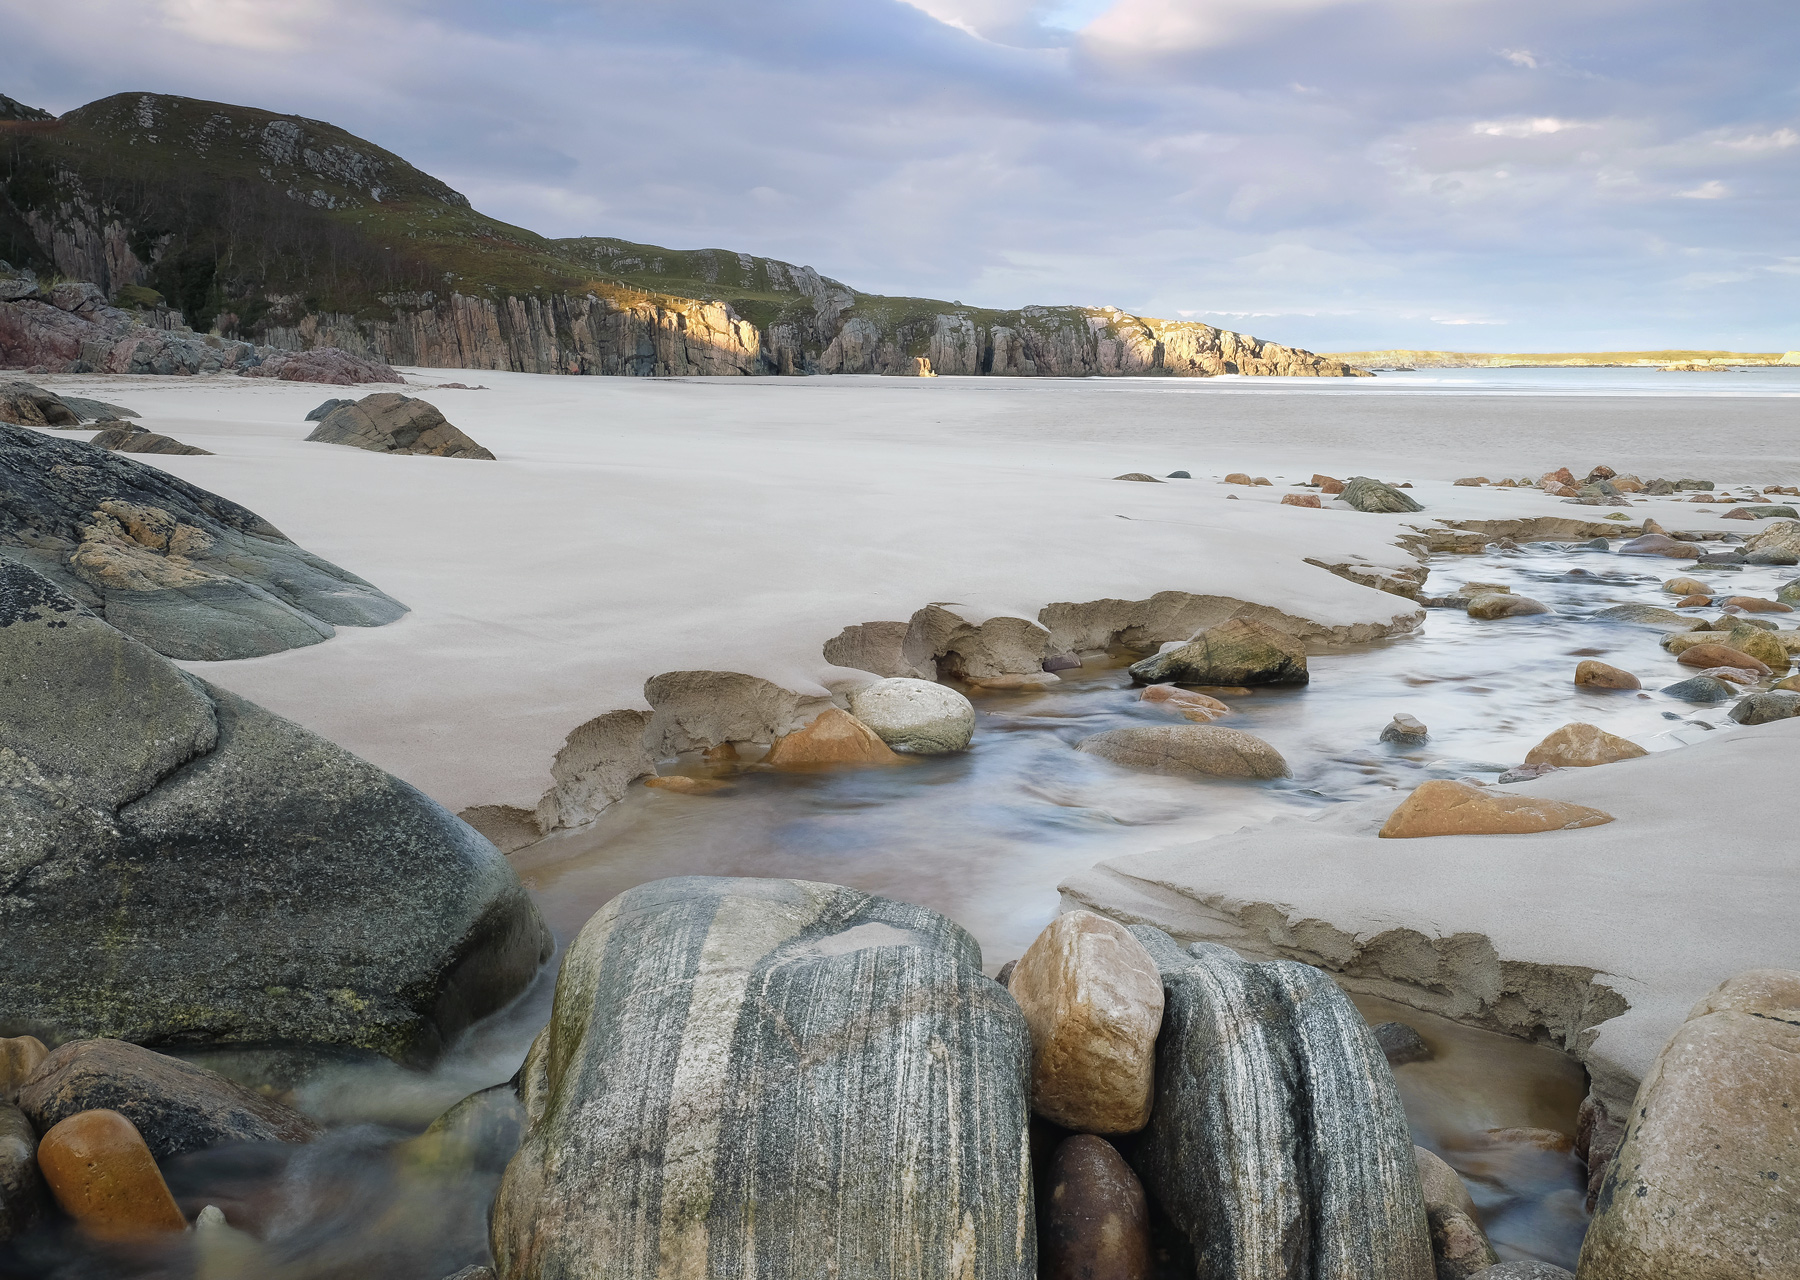 Can of Beans beach as it is known locally is an absolute stunner with beautiful sands exotic rocks and a geological rock assortment...